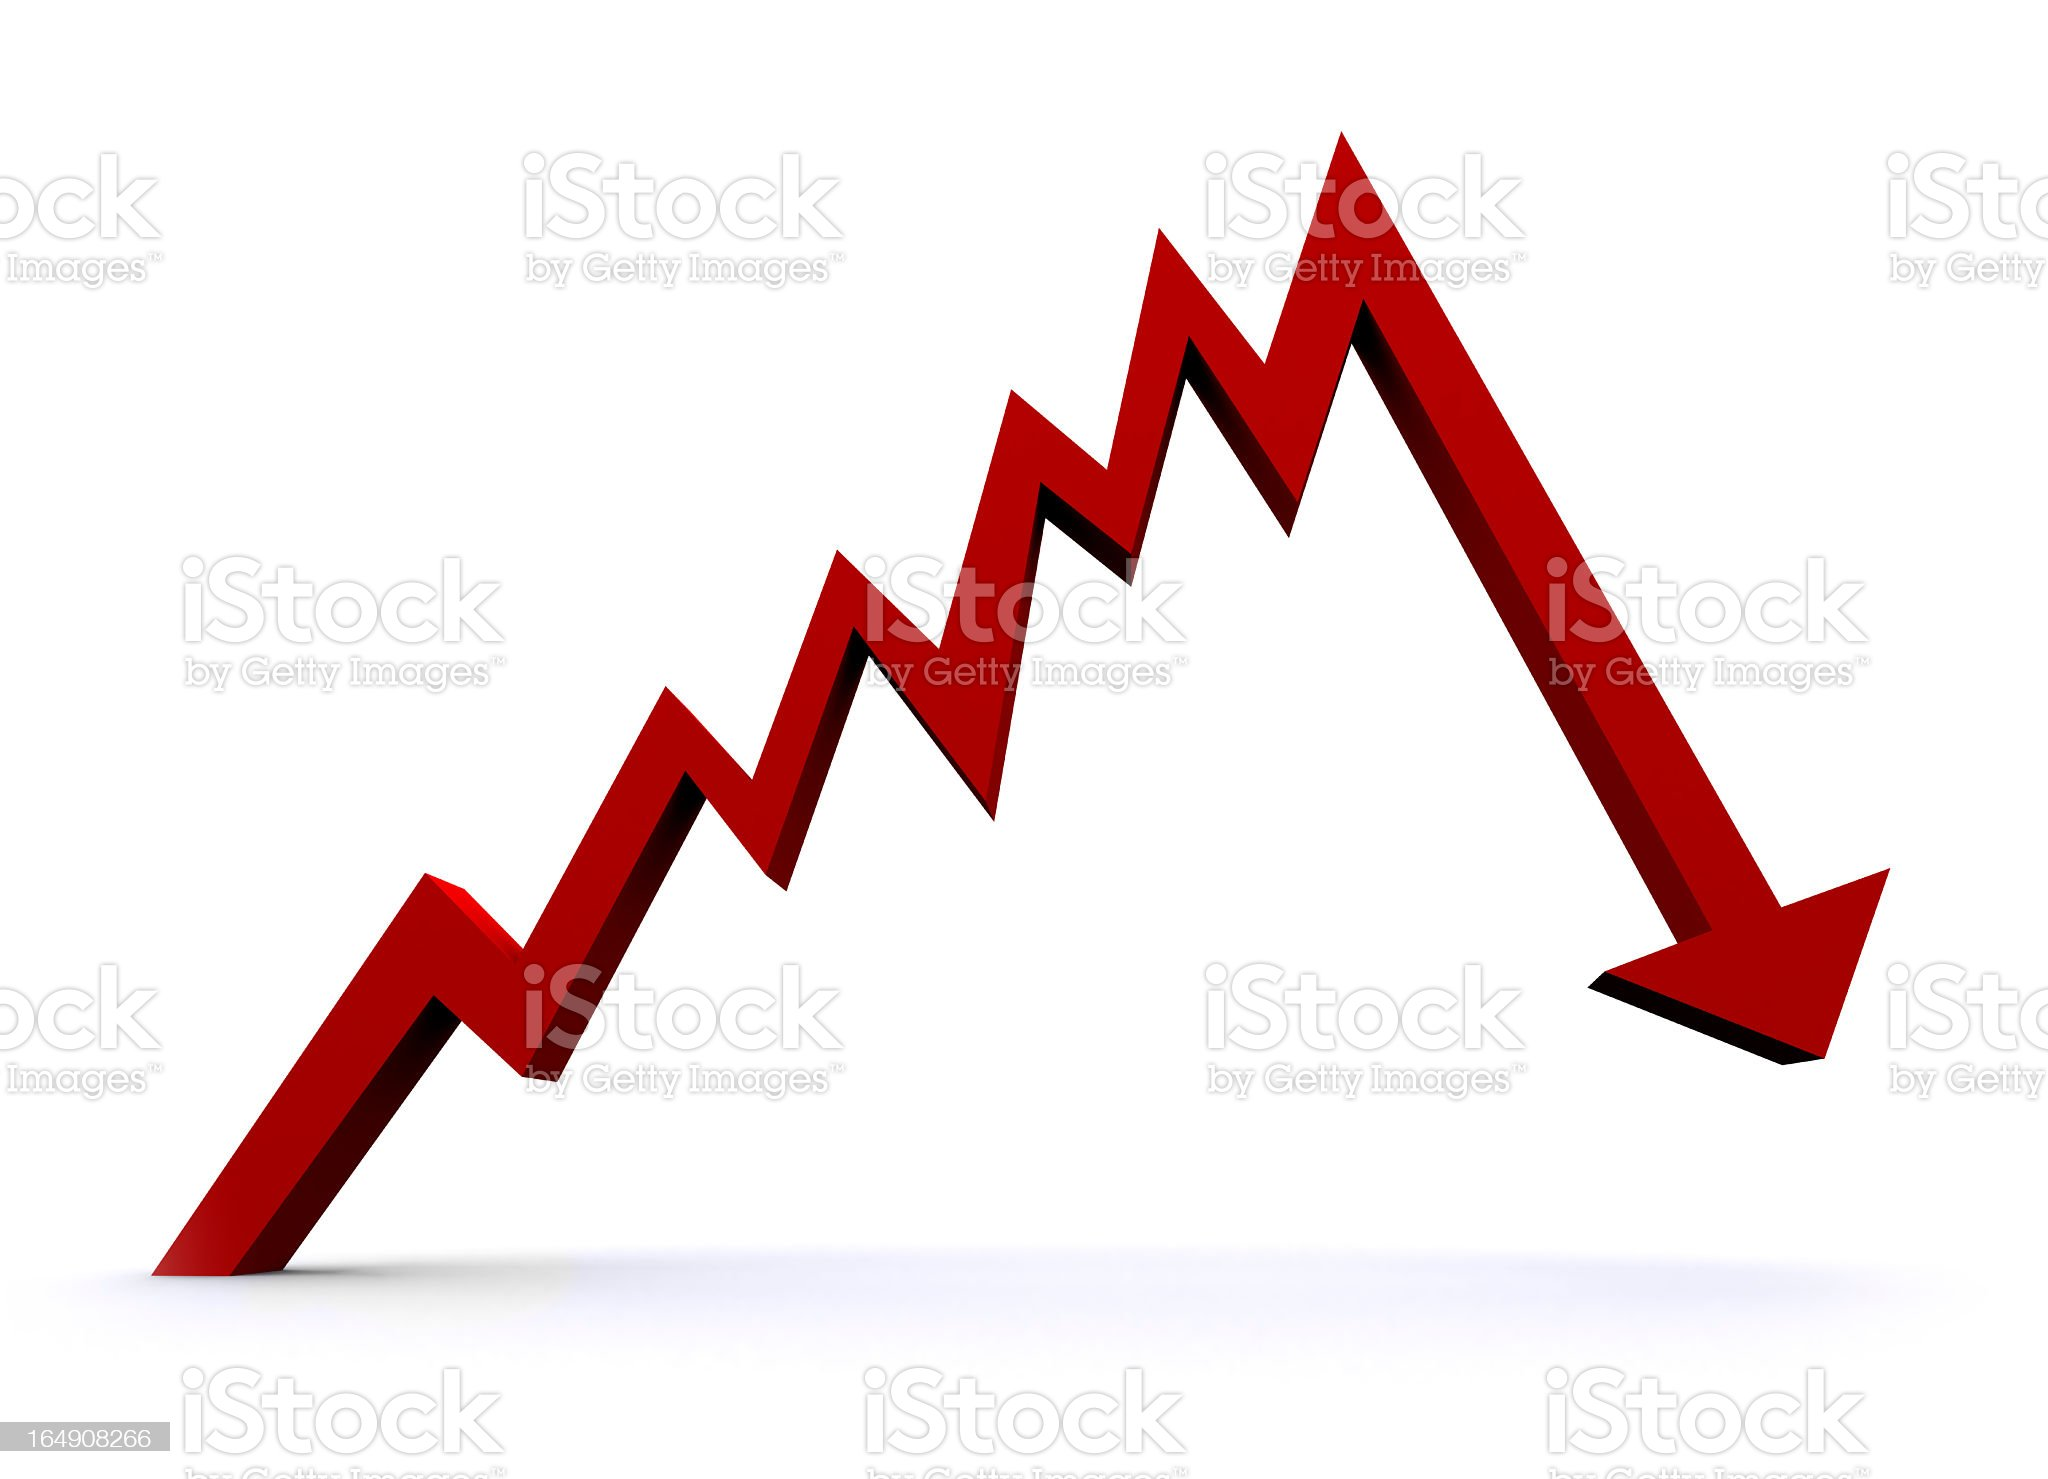 Recession royalty-free stock photo